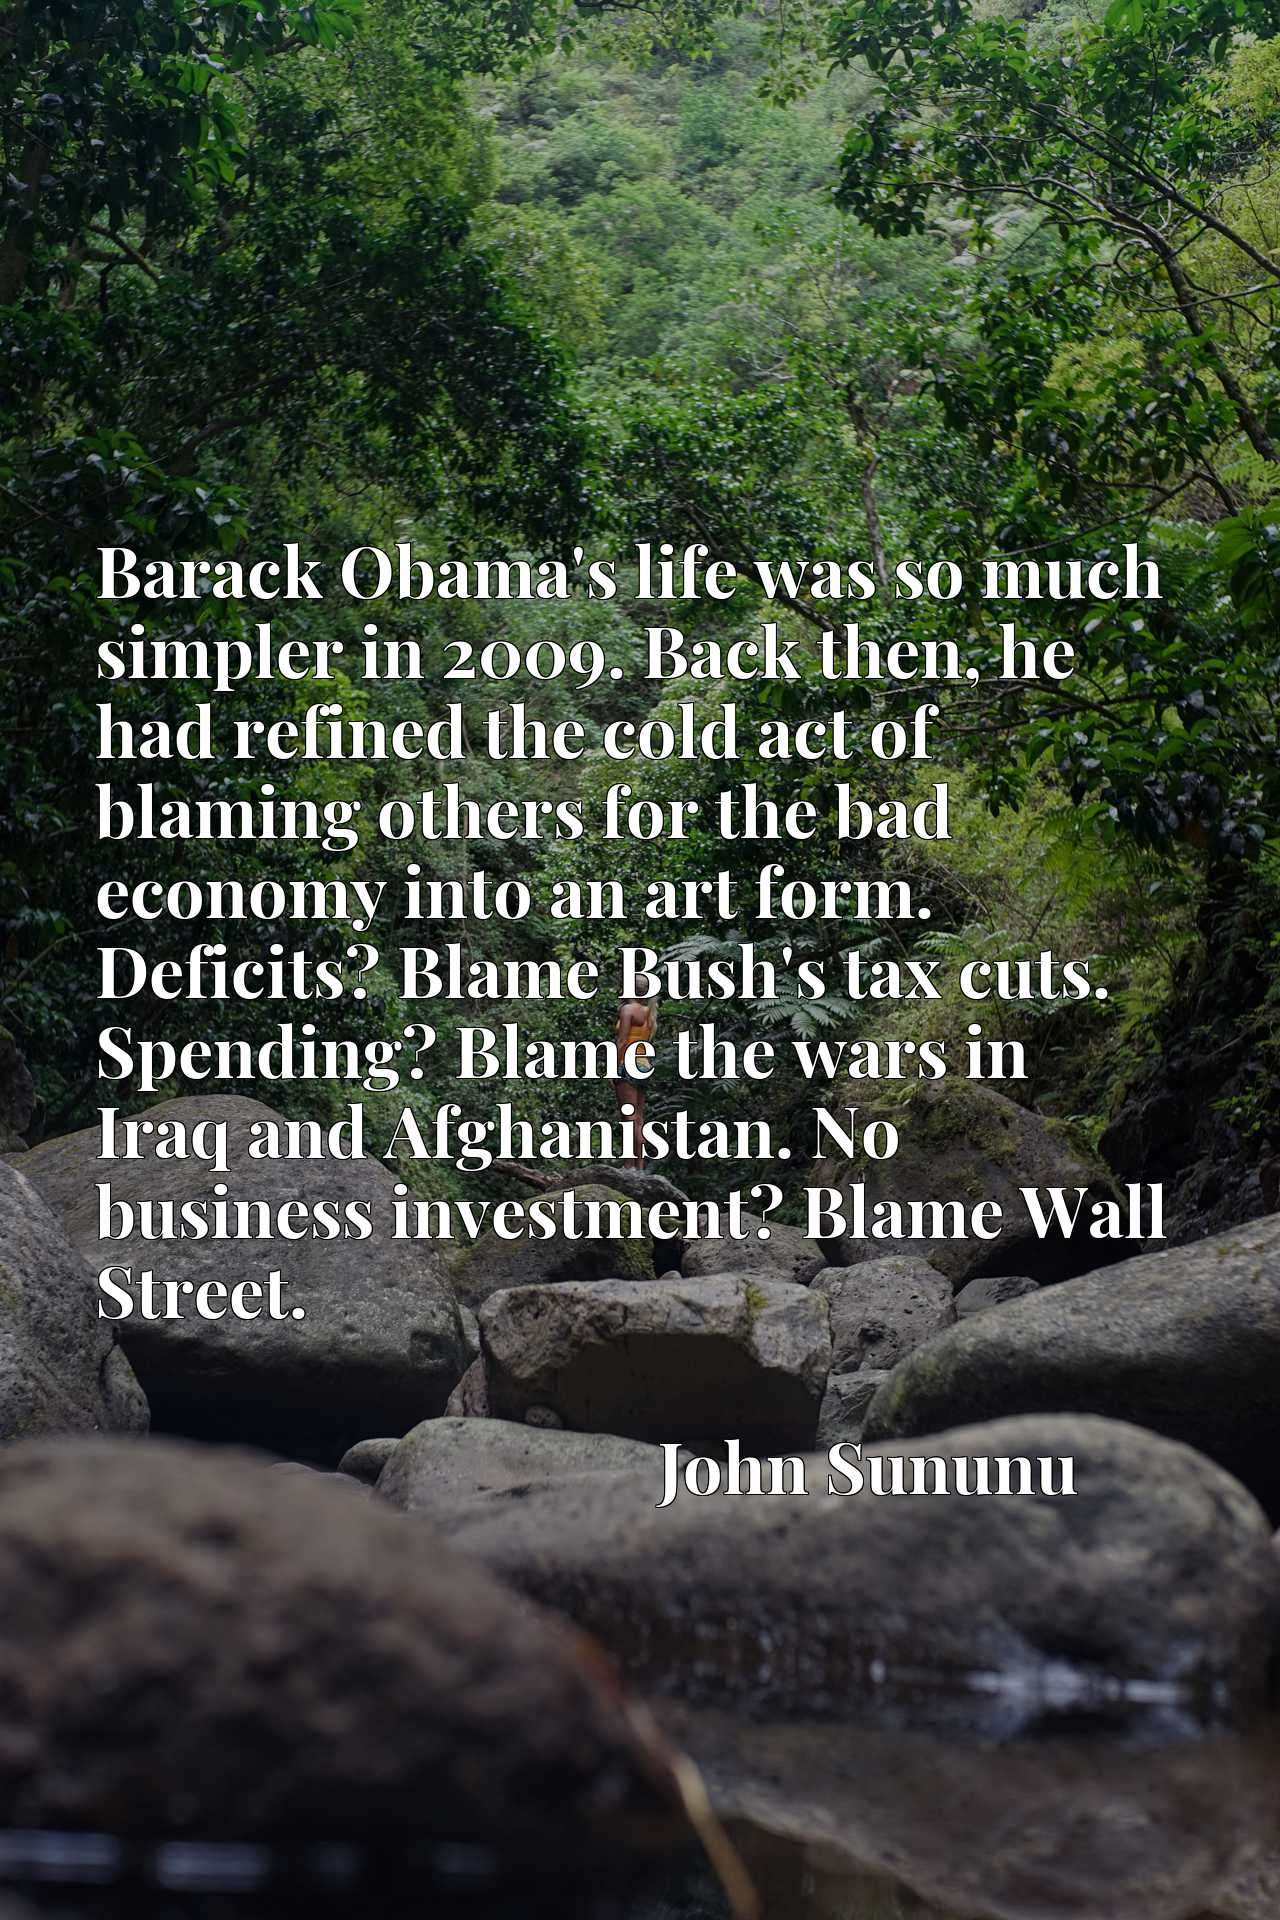 Barack Obama's life was so much simpler in 2009. Back then, he had refined the cold act of blaming others for the bad economy into an art form. Deficits? Blame Bush's tax cuts. Spending? Blame the wars in Iraq and Afghanistan. No business investment? Blame Wall Street.